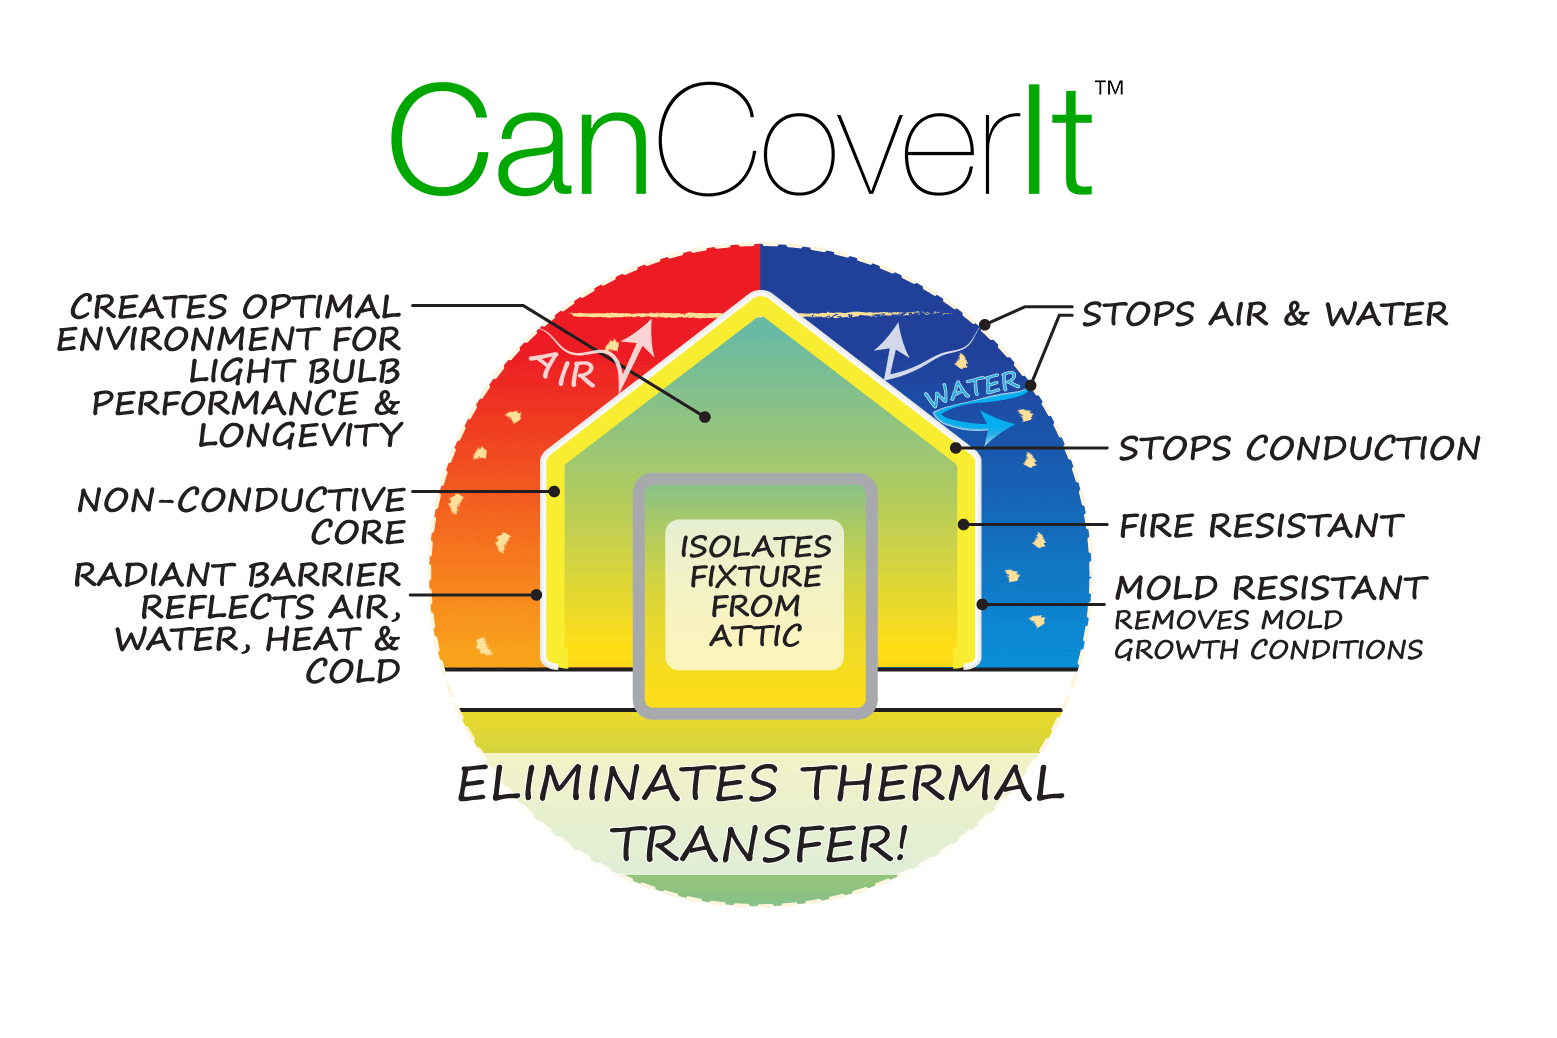 CanCoverIt protects all metal ceiling fixtures and eliminates thermal transfer!